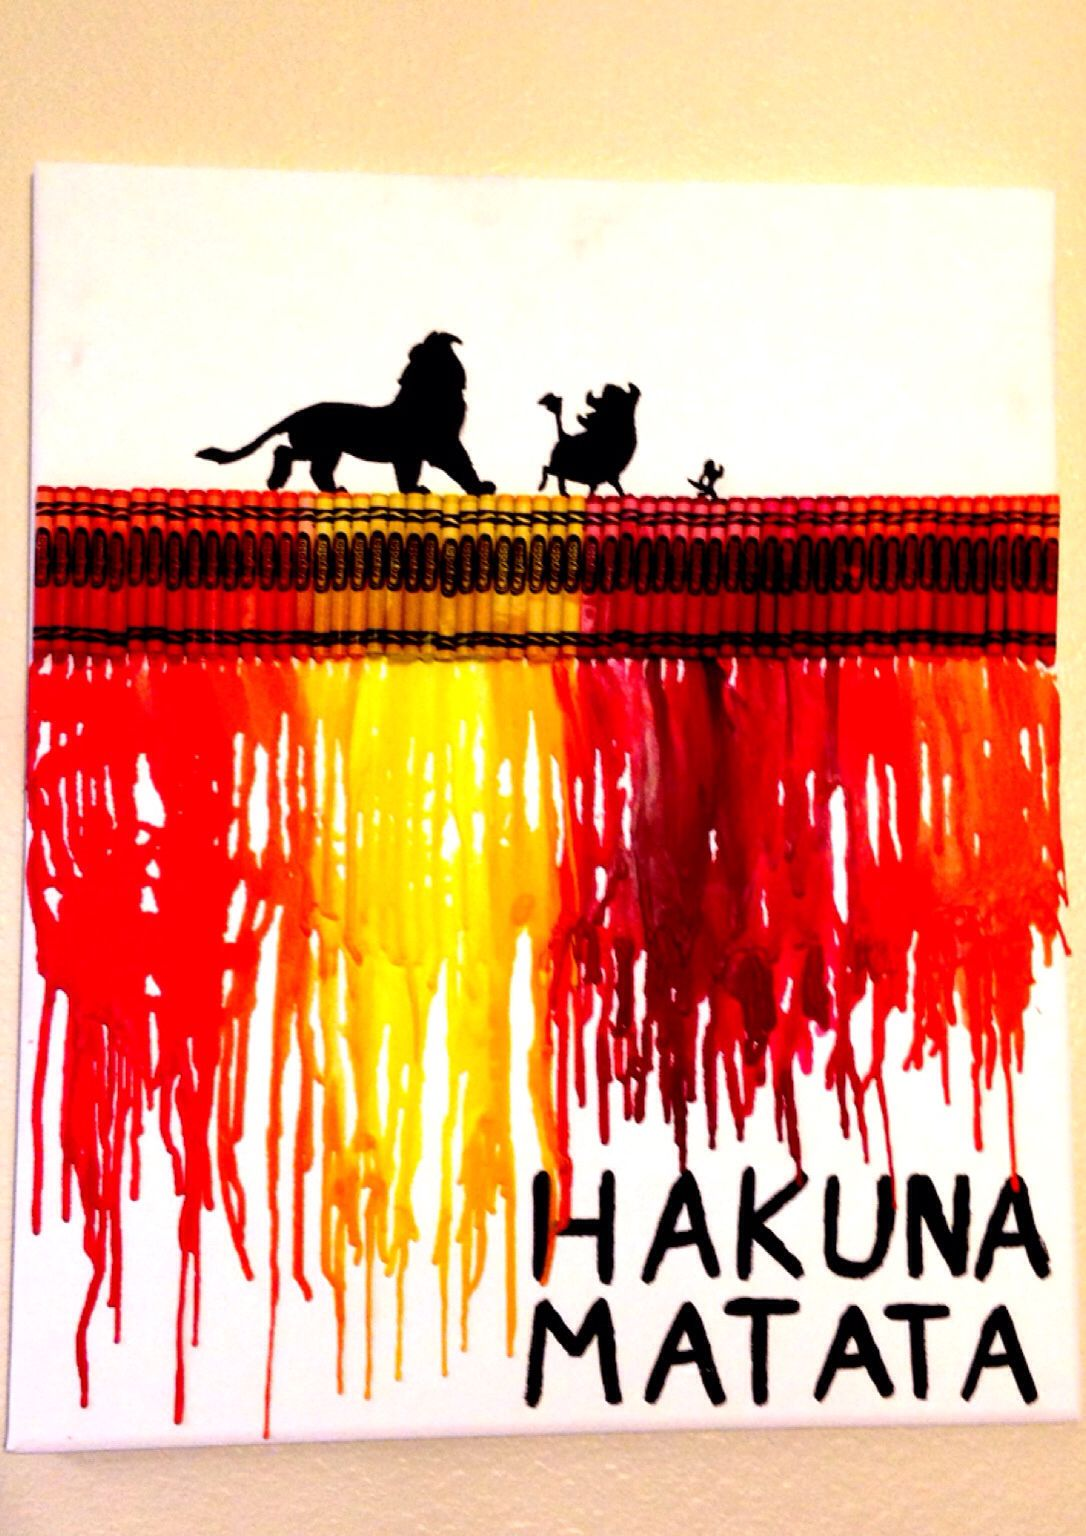 My Absolute Favorite Melted Crayon Art That I Made Crayonart Disney LionKing